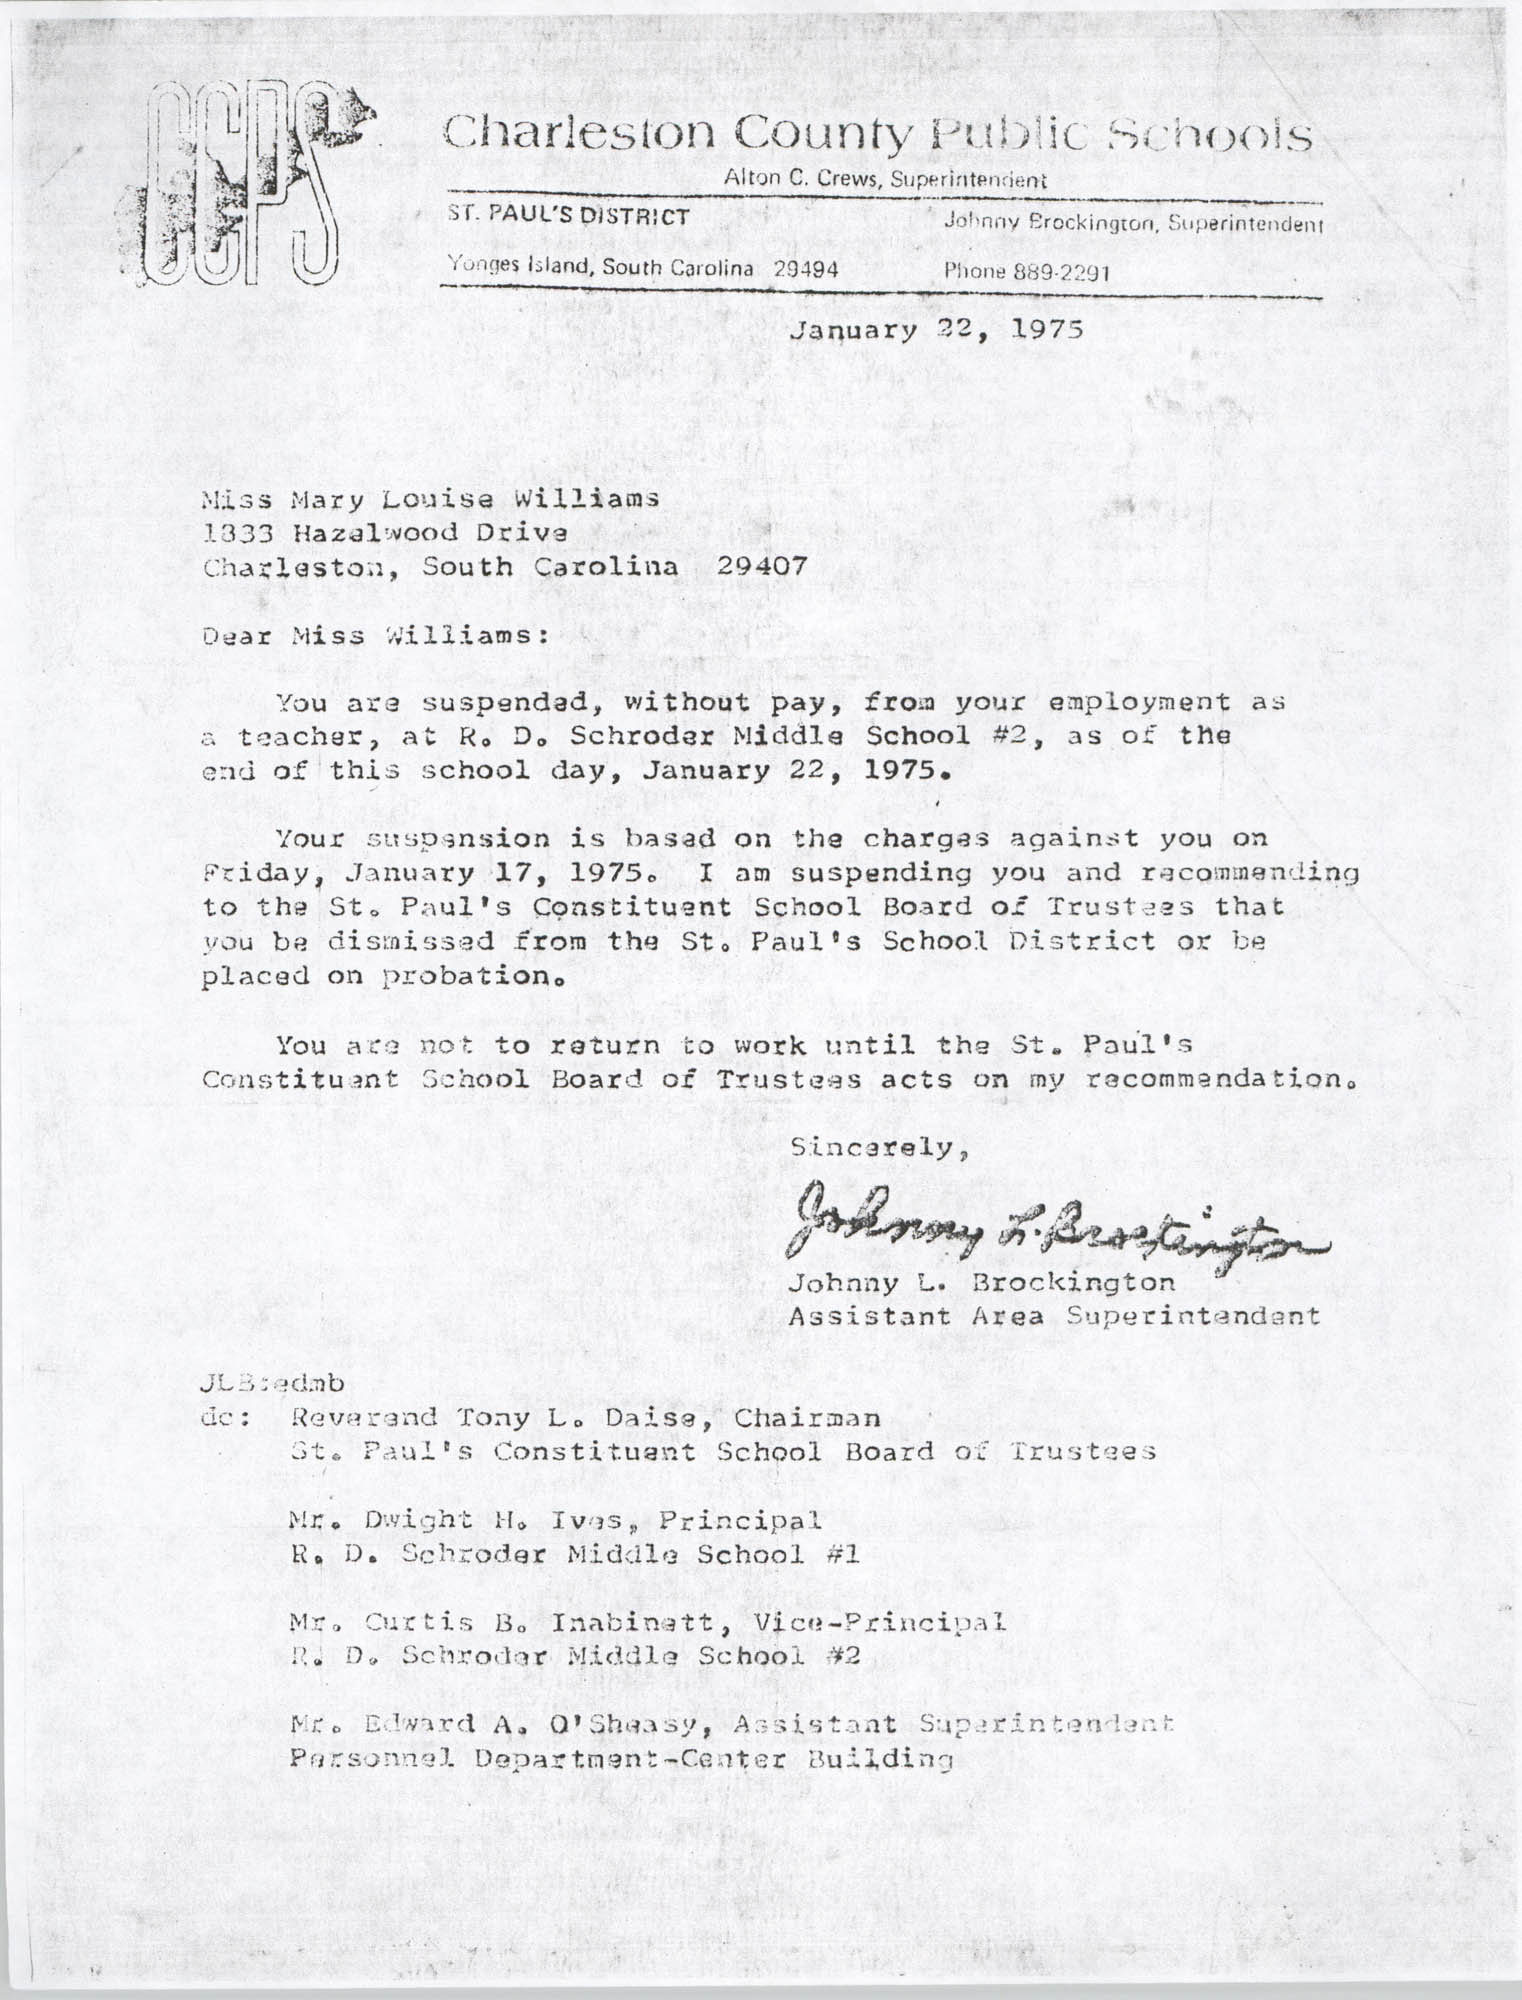 Letter from Johnny L. Brockington to Mary Louise Williams, January 22, 1975